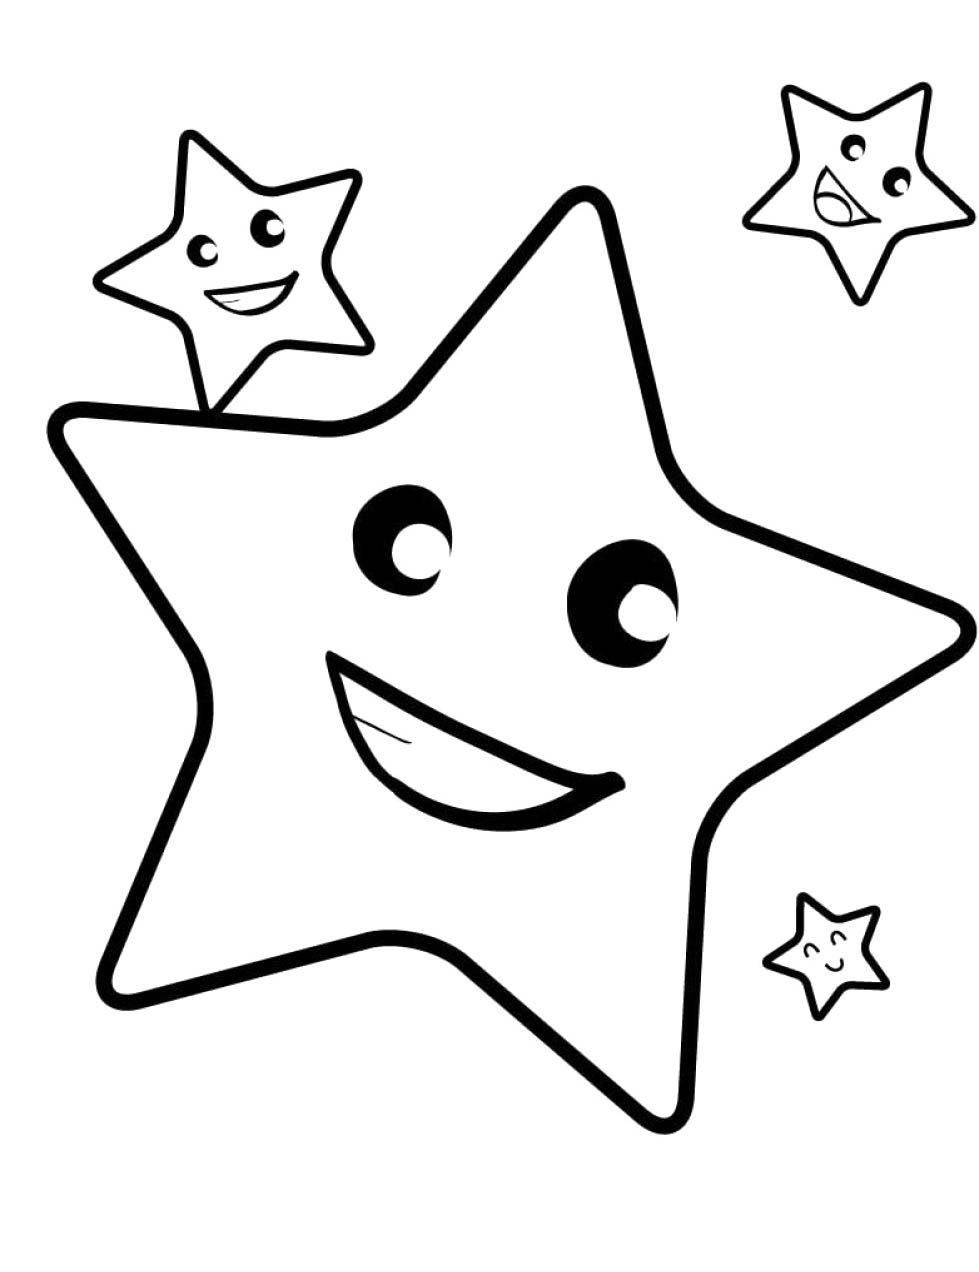 star coloring page Google Search For the Kids Pinterest